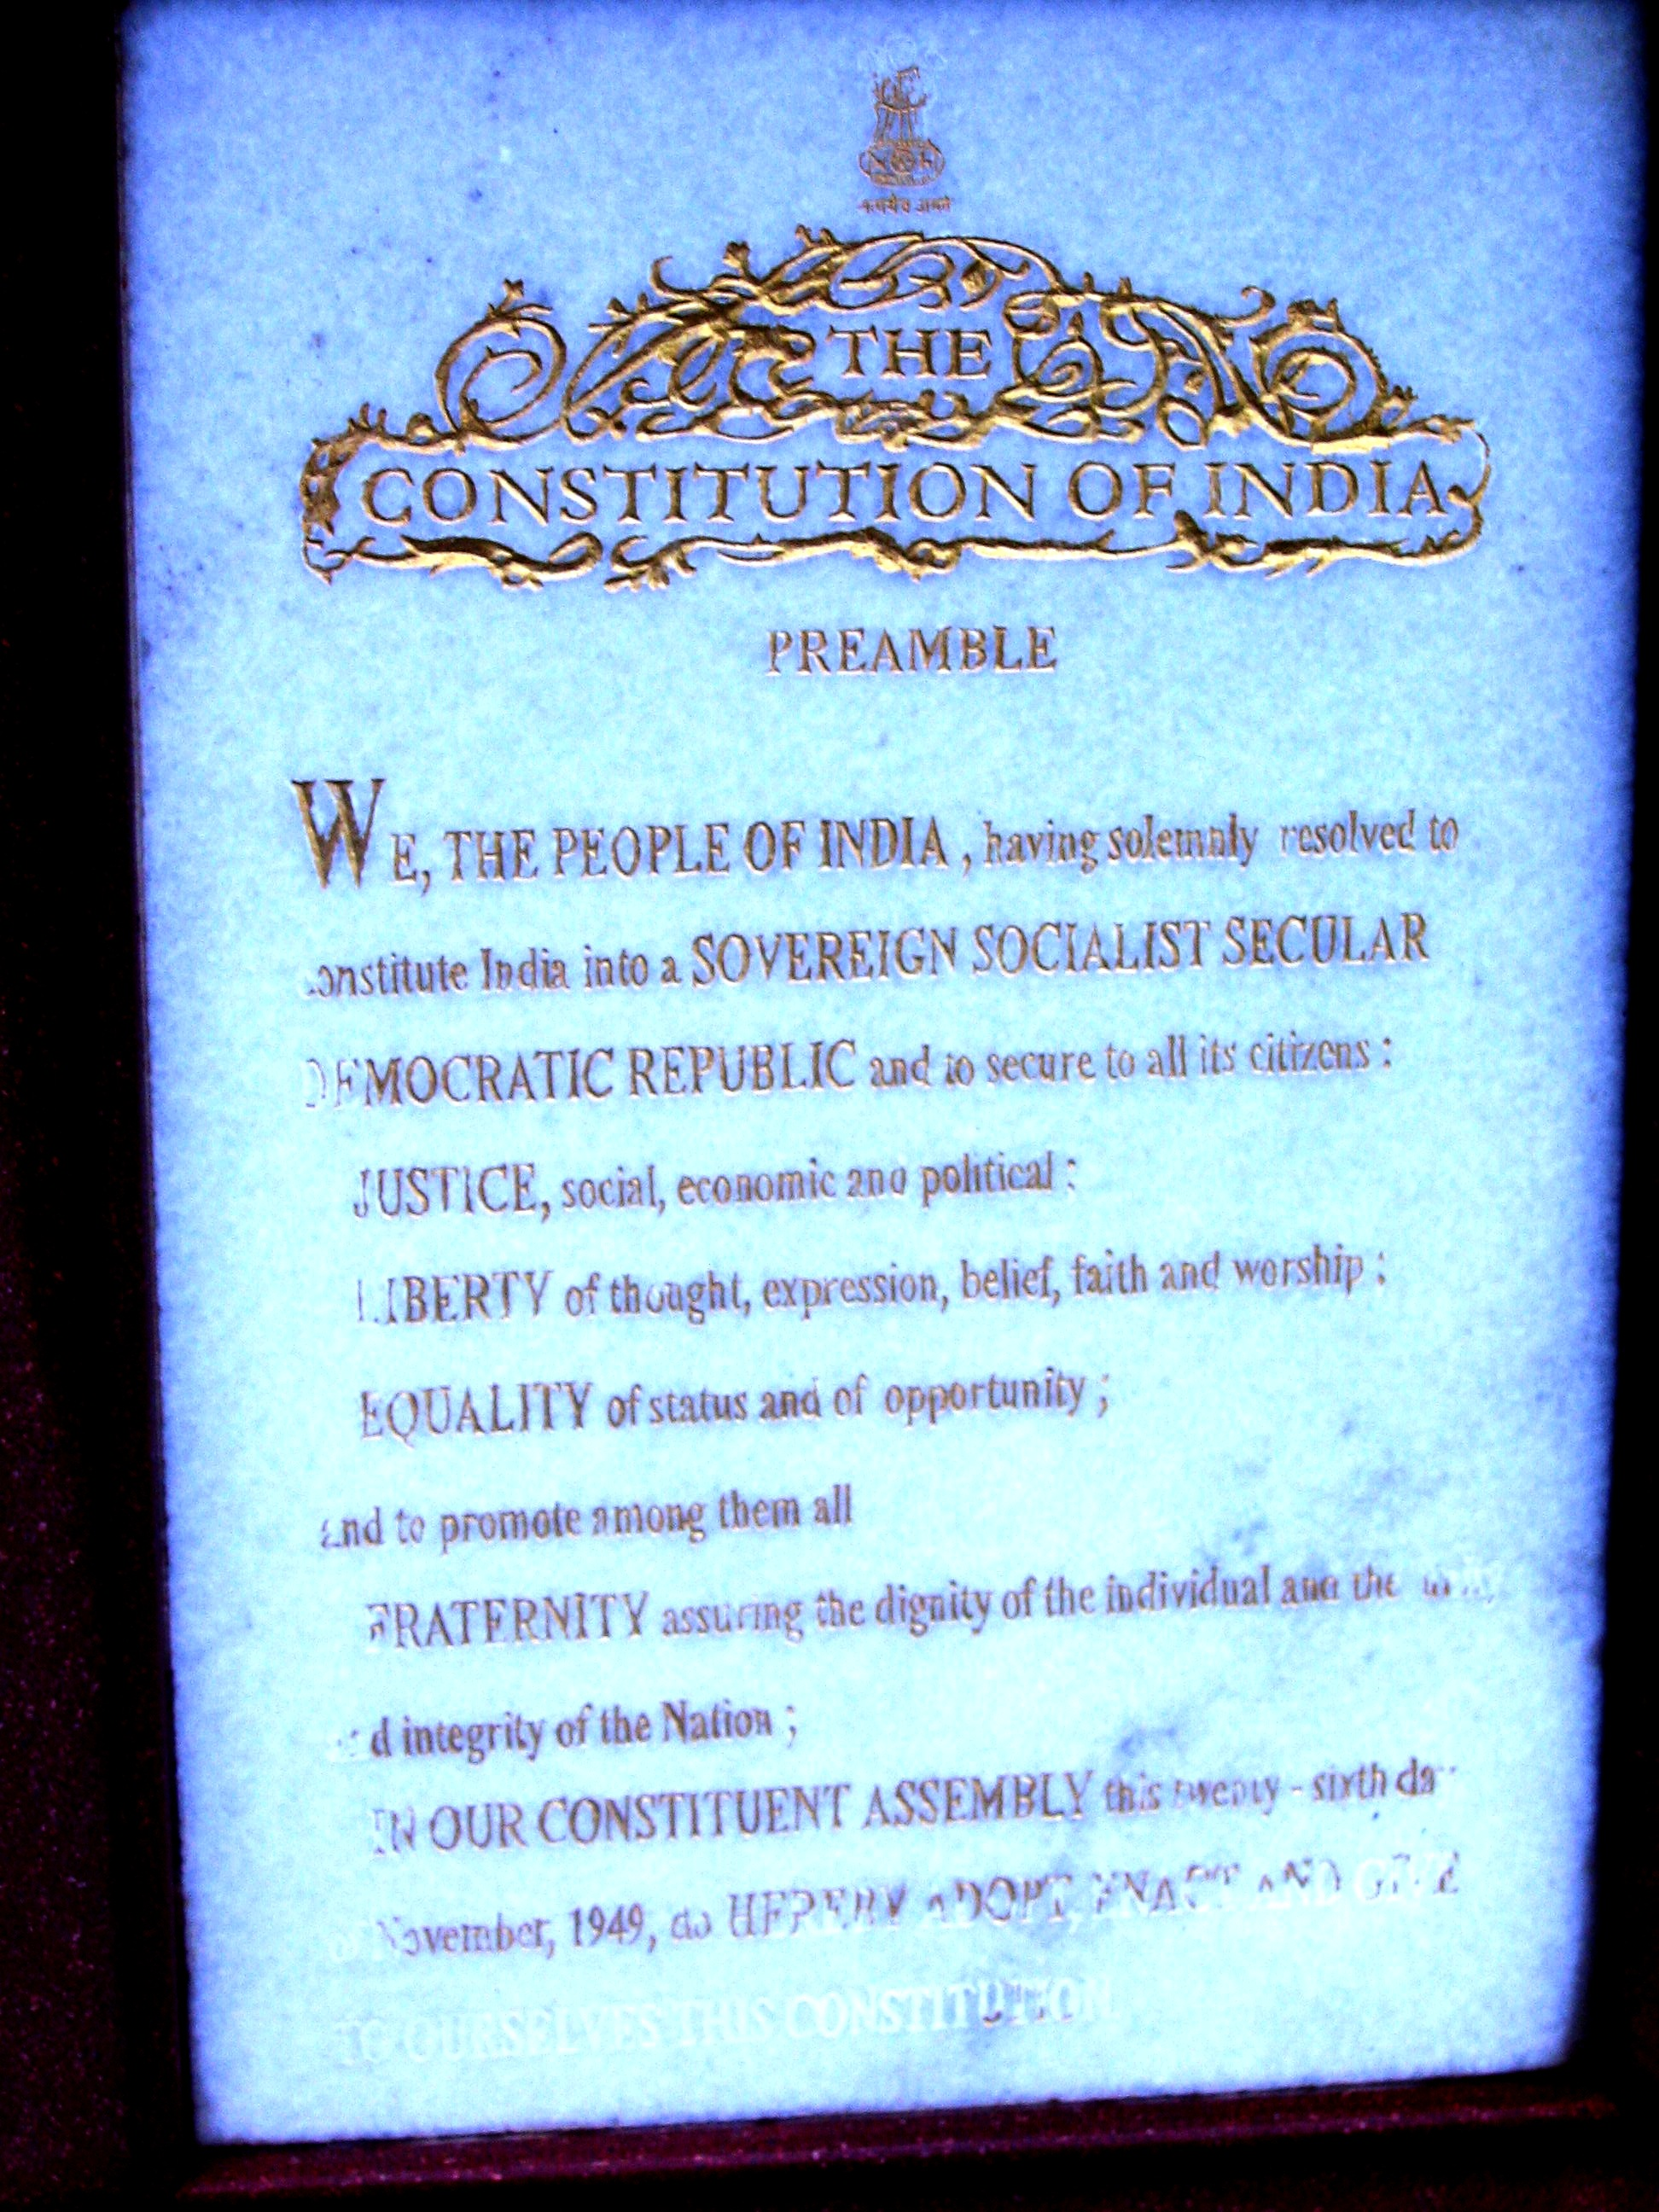 File:Preamble-Constitution-India.jpg - Wikimedia Commons